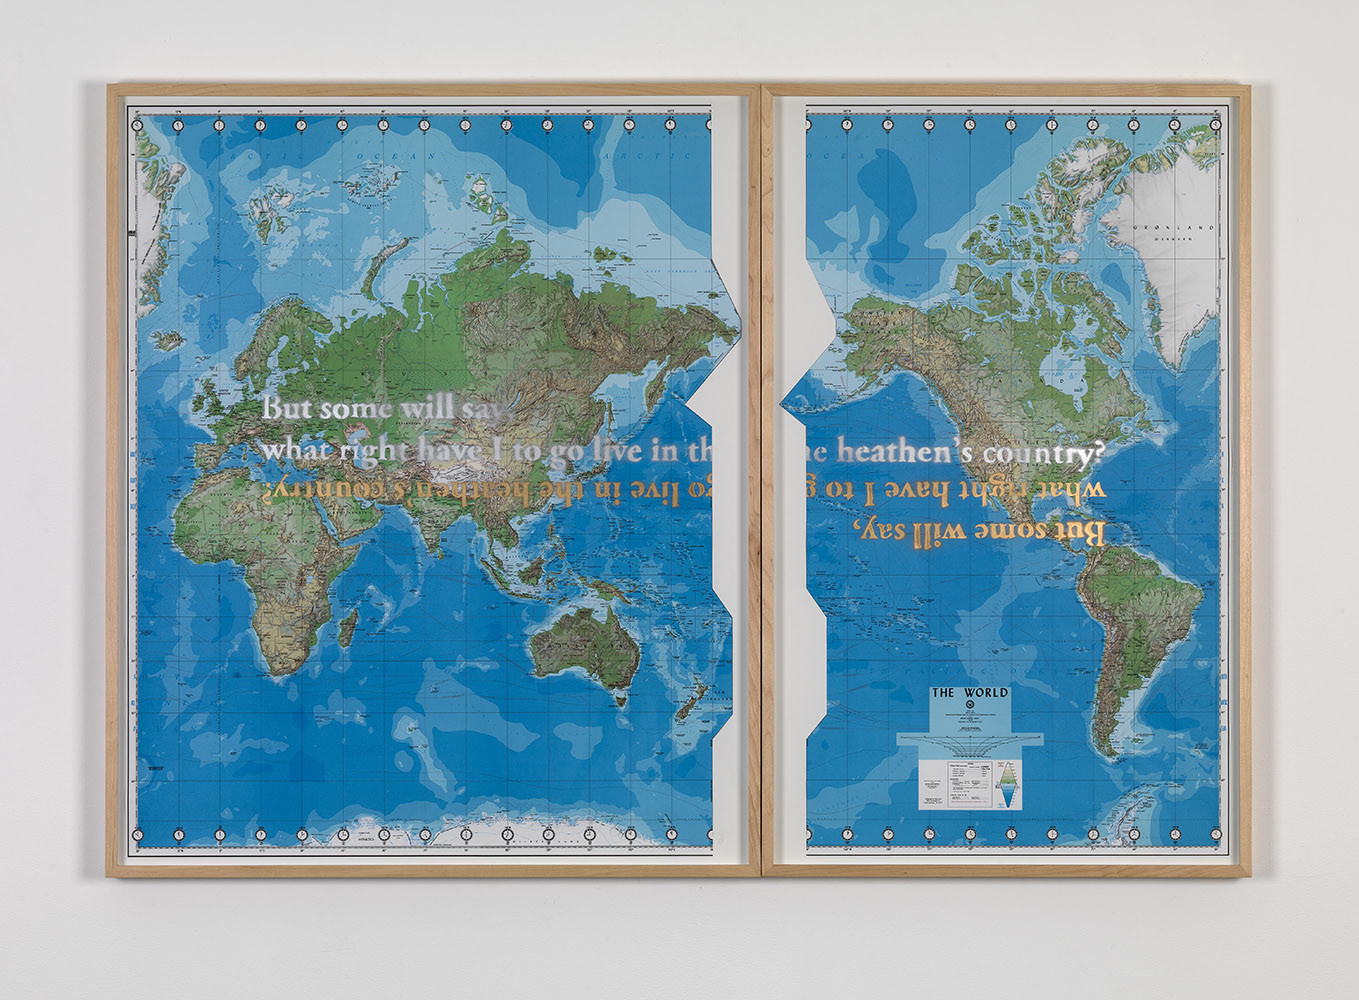 "<div class=""title""><em>The World (Defense Mapping Agency)</em>, 2010</div><div class=""medium"">spray enamel on map</div><div class=""dimensions"">left: 107.6 x 88.3 x 4.7 cm / 42 ⅜ x 34 ¾ x 1 ⅞ in<br />right: 107.6 x 66.2 x 4.7 cm / 42 ⅜ x 26 ⅛ x ⅞ in</div>"